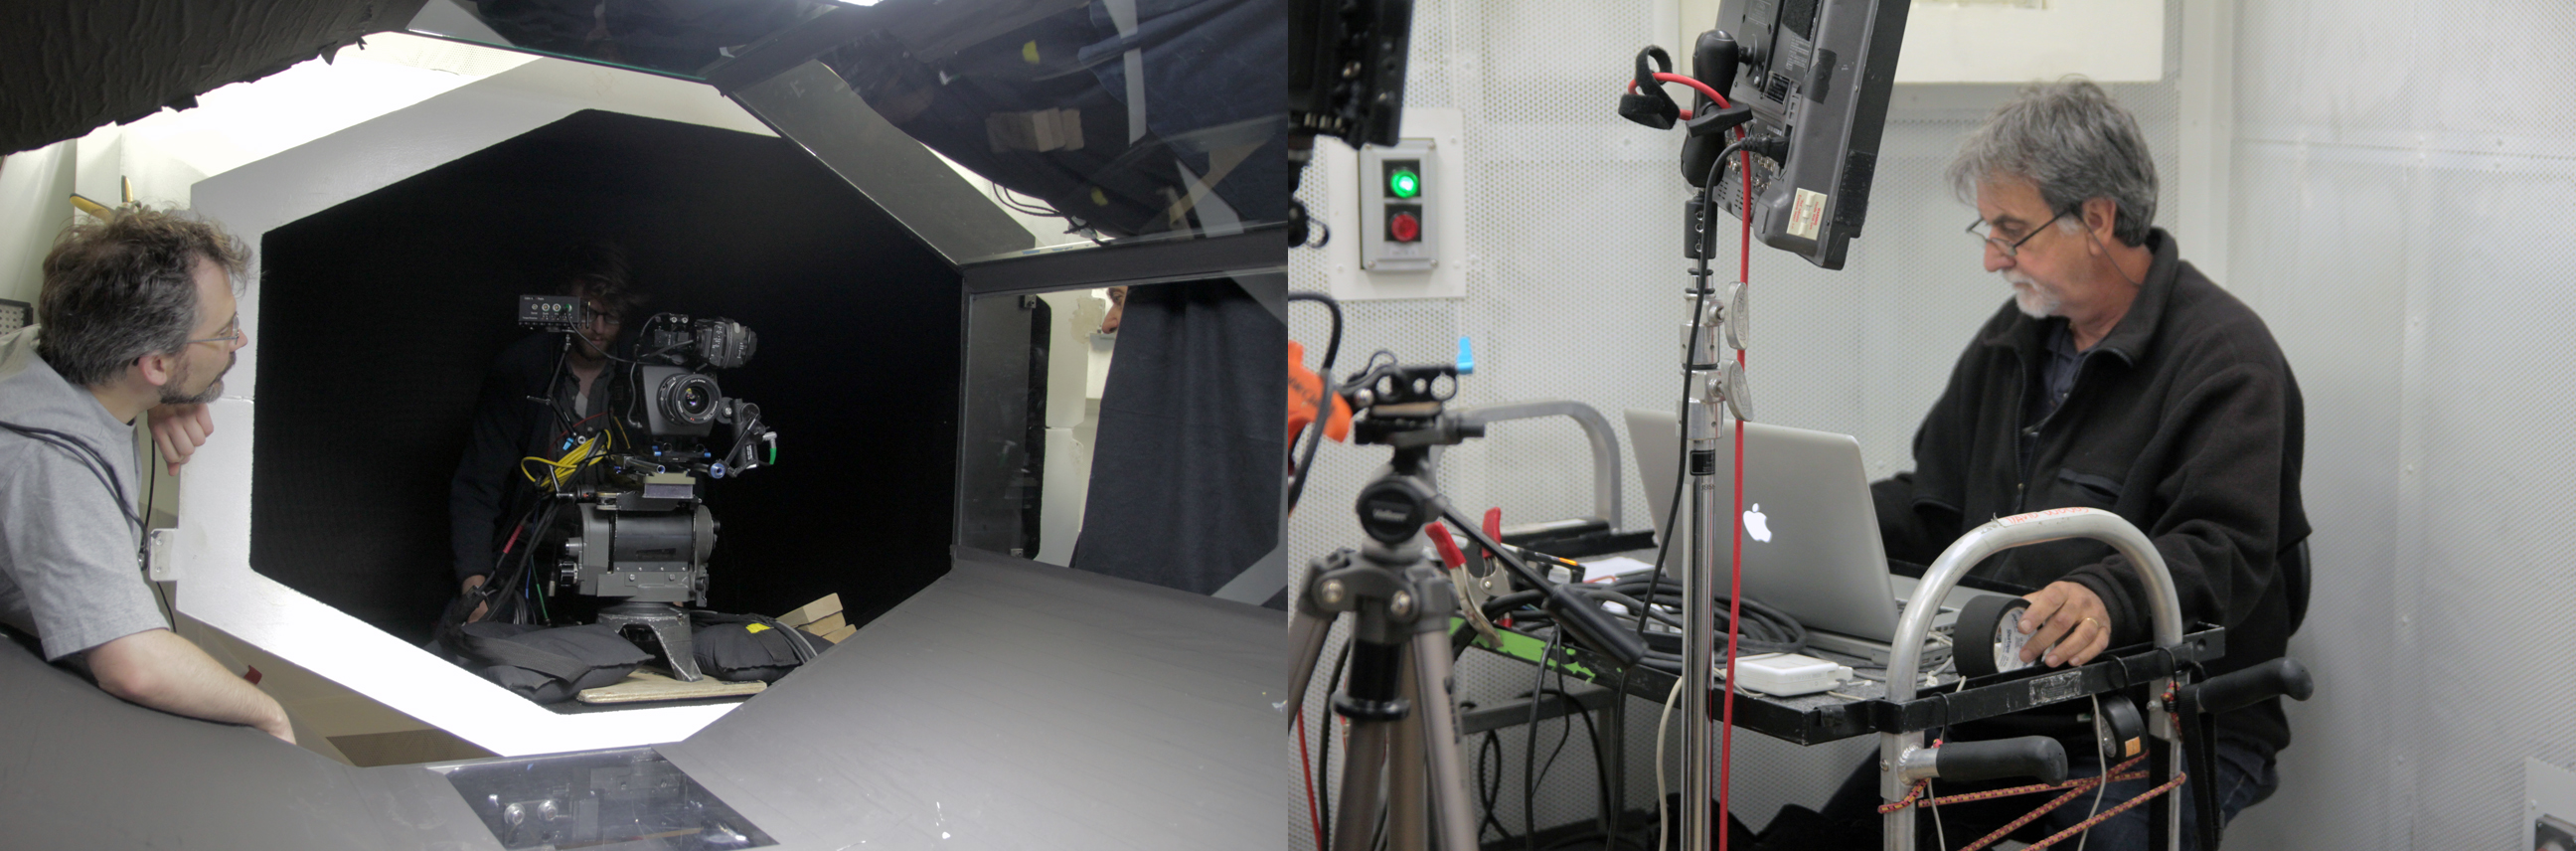 The Messenger camera is set inside the wind tunnel, while outside, technician Marty Carriero prepares to record the files from the Phantom Camera.